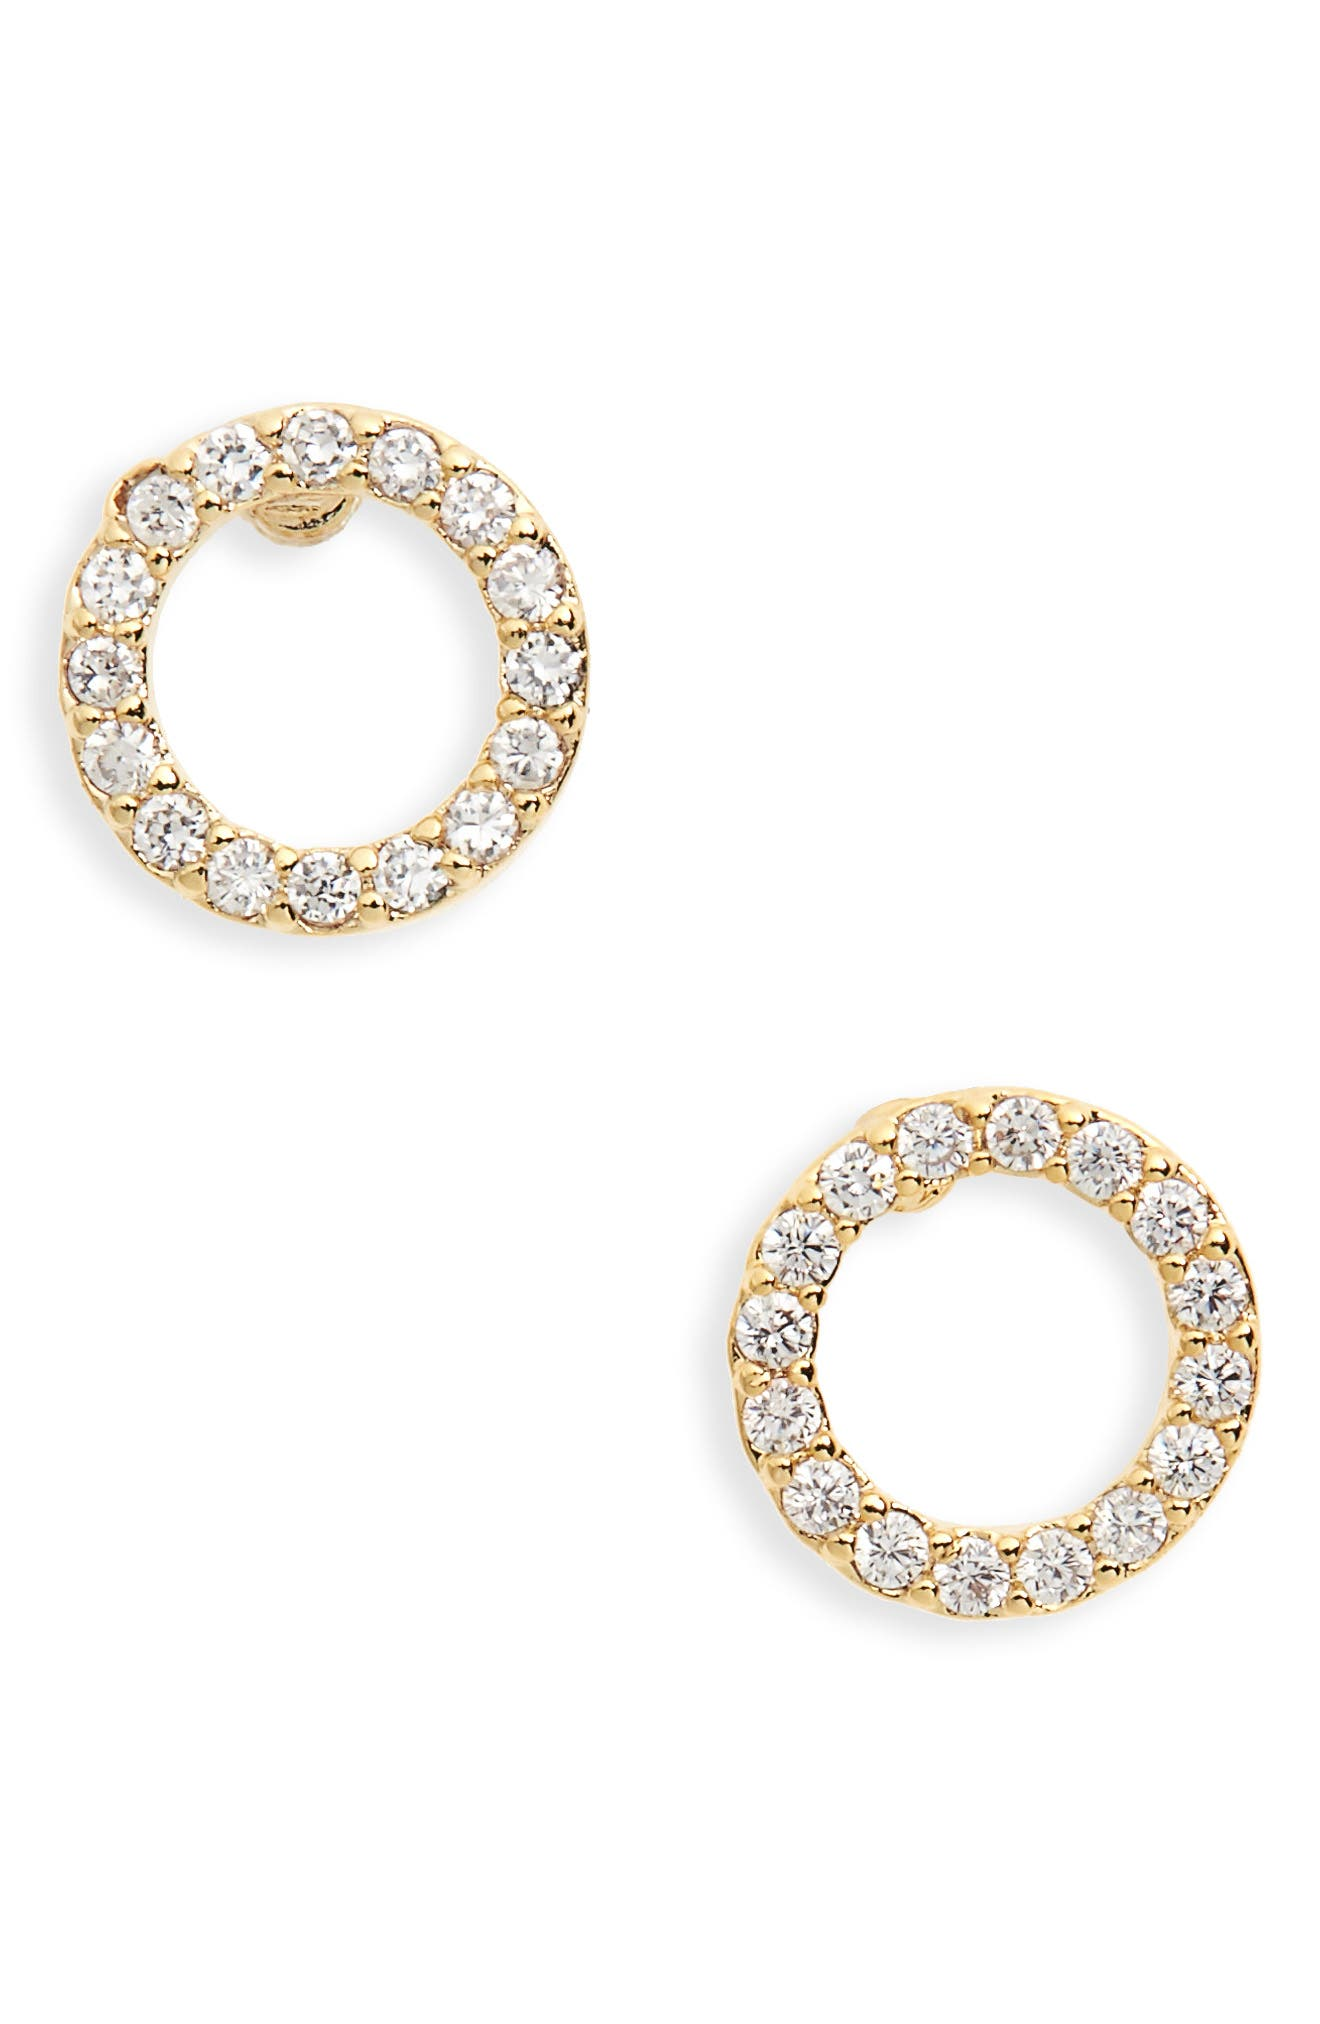 Pave Crescent Moon Stud Earrings